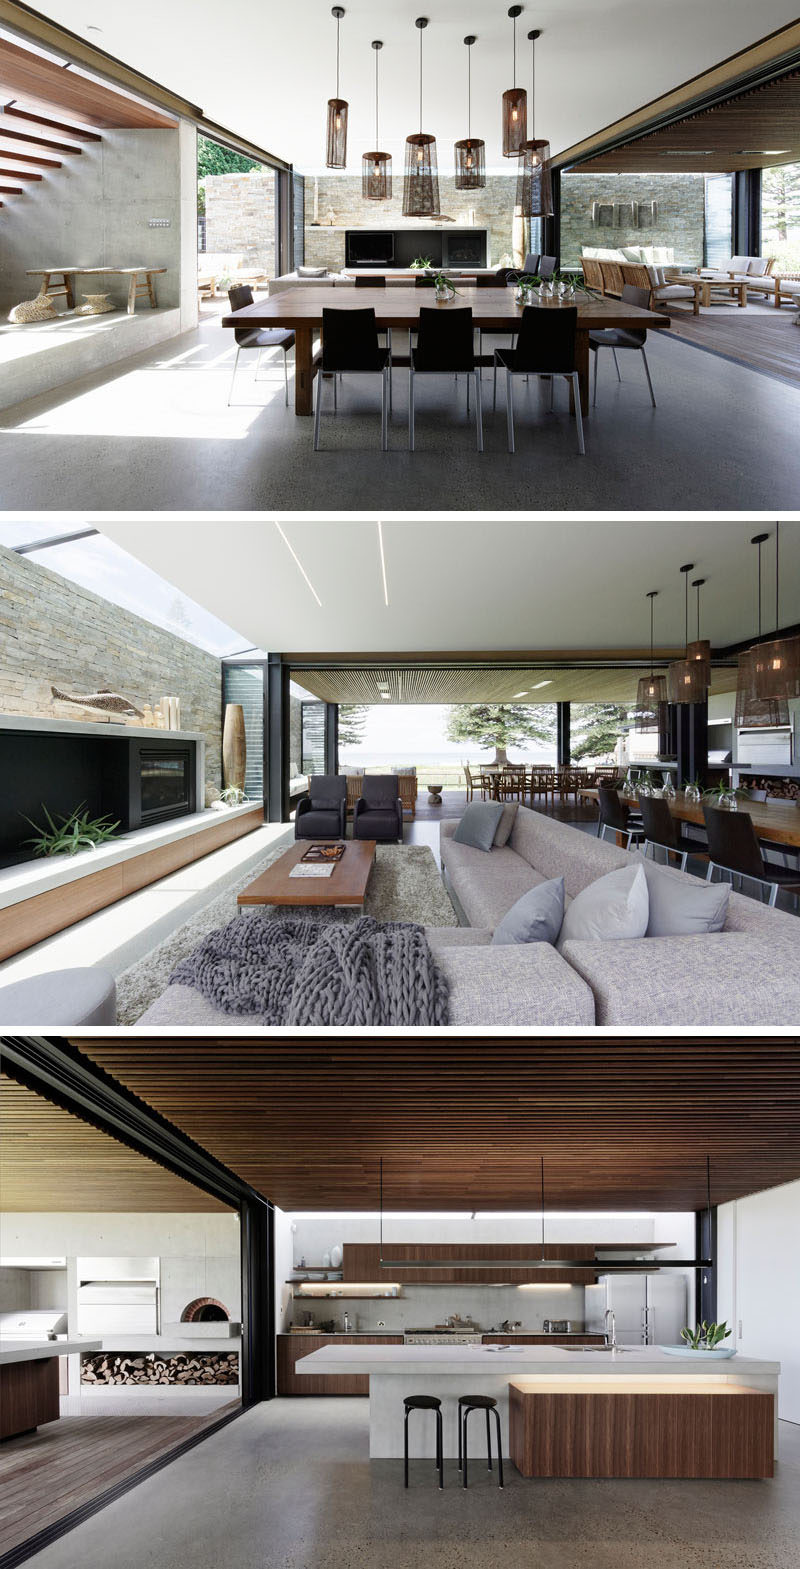 The social areas, like the living room, dining room, and kitchen, of this modern house open to a covered back verandah with views of the ocean. #OpenPlanInterior #LivingRoom #Kitchen #DiningRoom